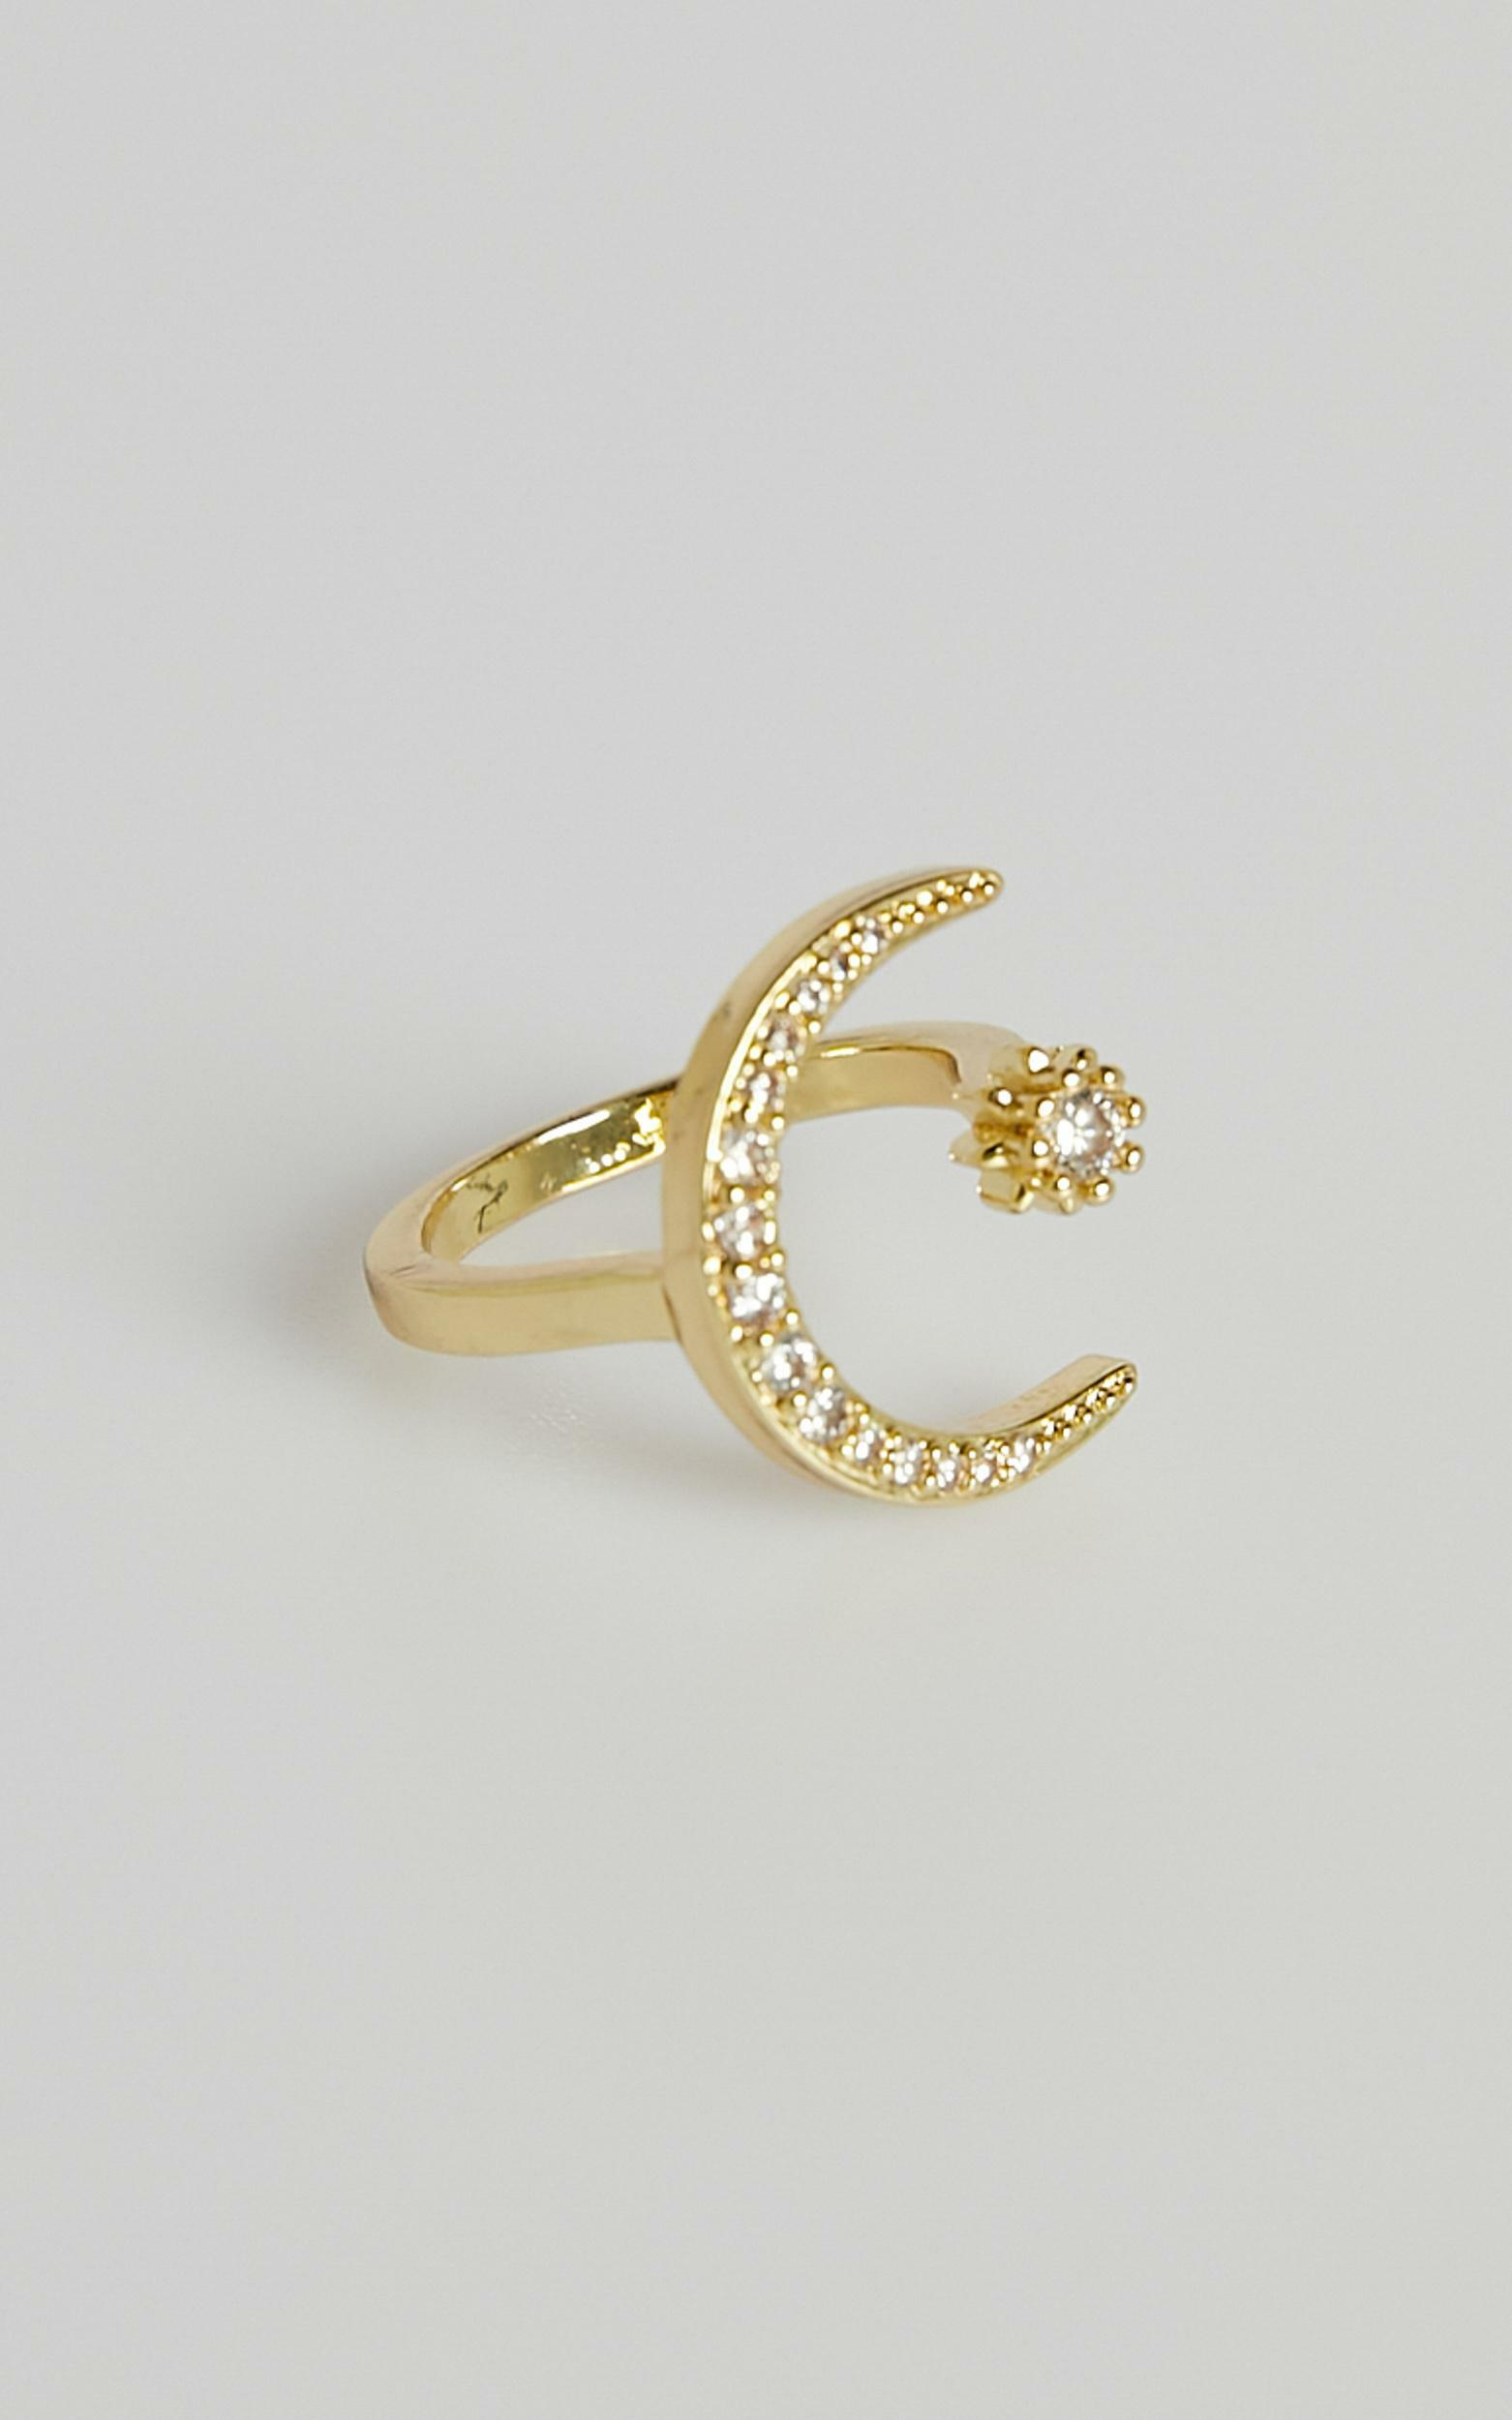 Anah Ring in Gold, , hi-res image number null